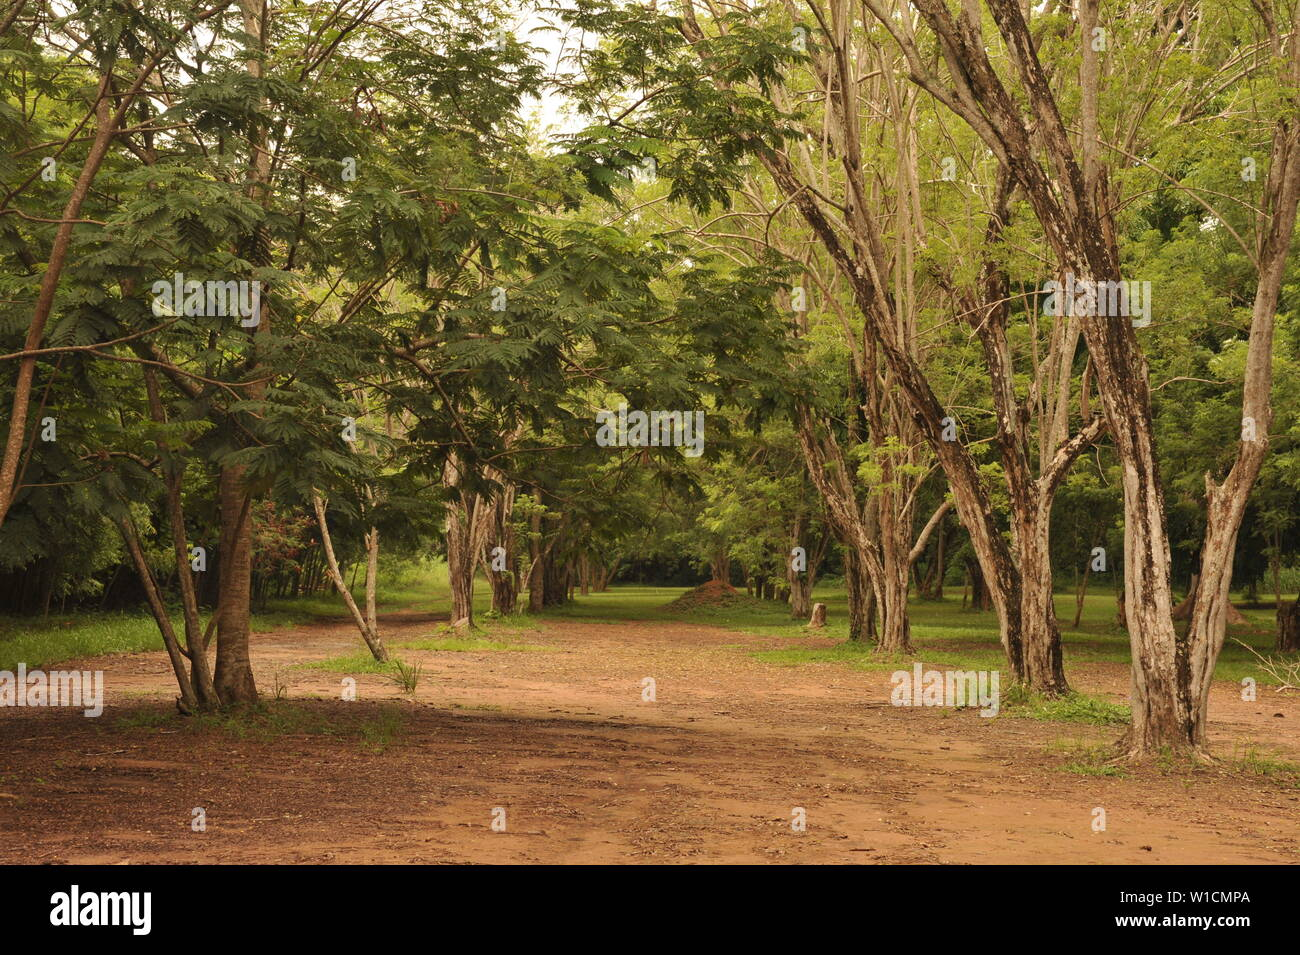 Legon High Resolution Stock Photography And Images Alamy